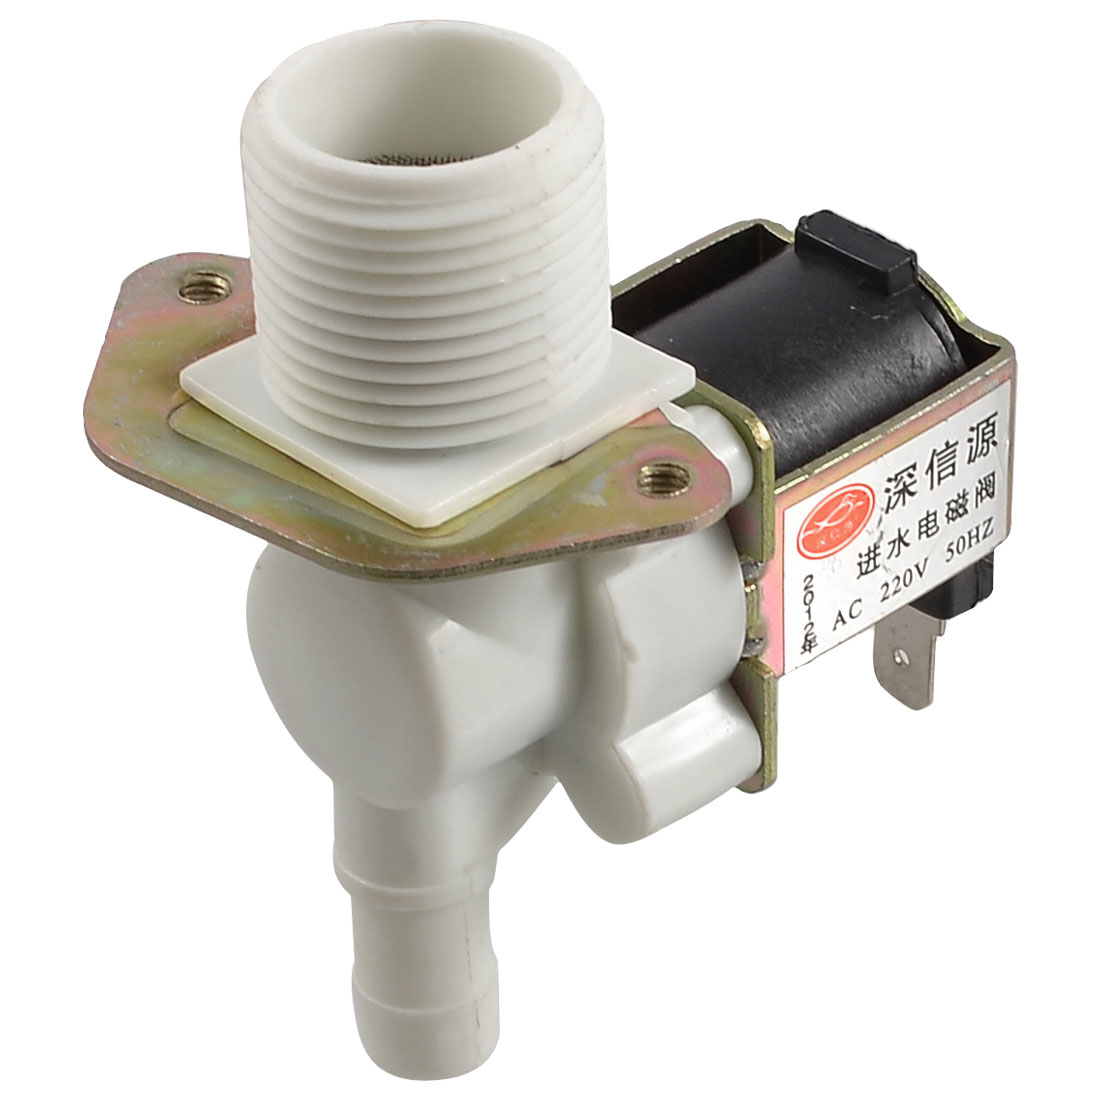 AC 220V Water Inlet Solenoid Valve for Washing Machine Washer